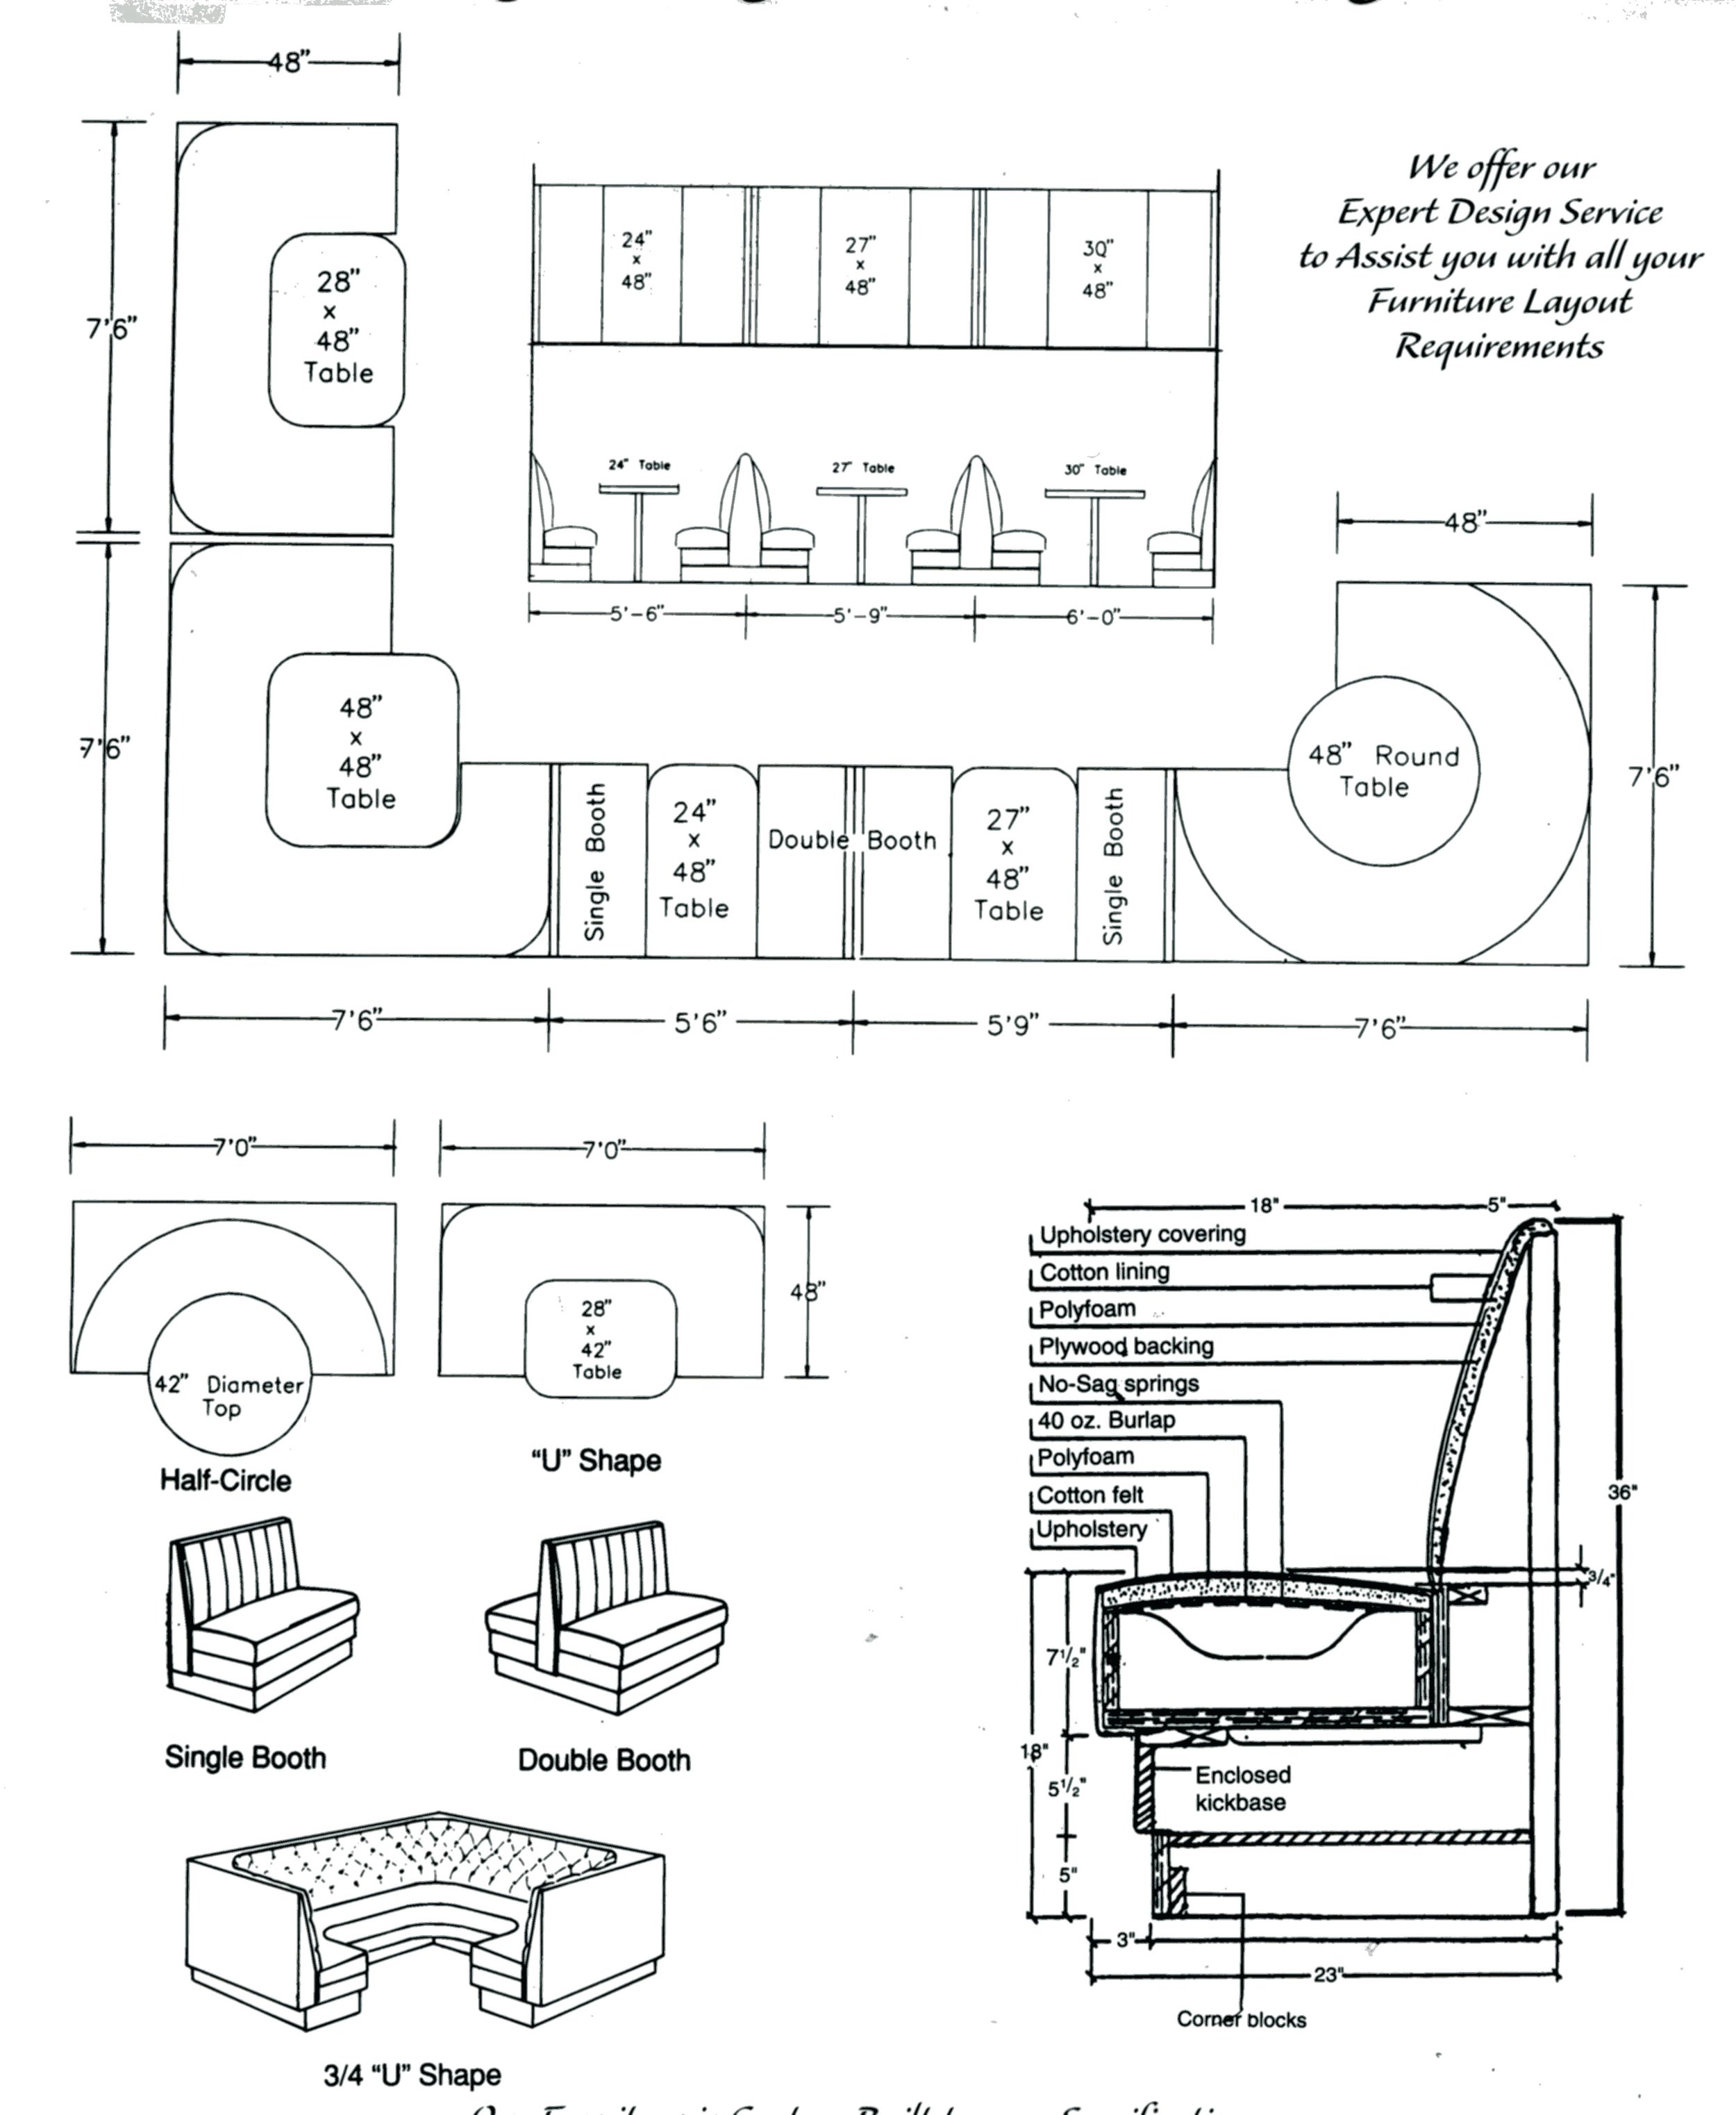 Design Layout and Planning